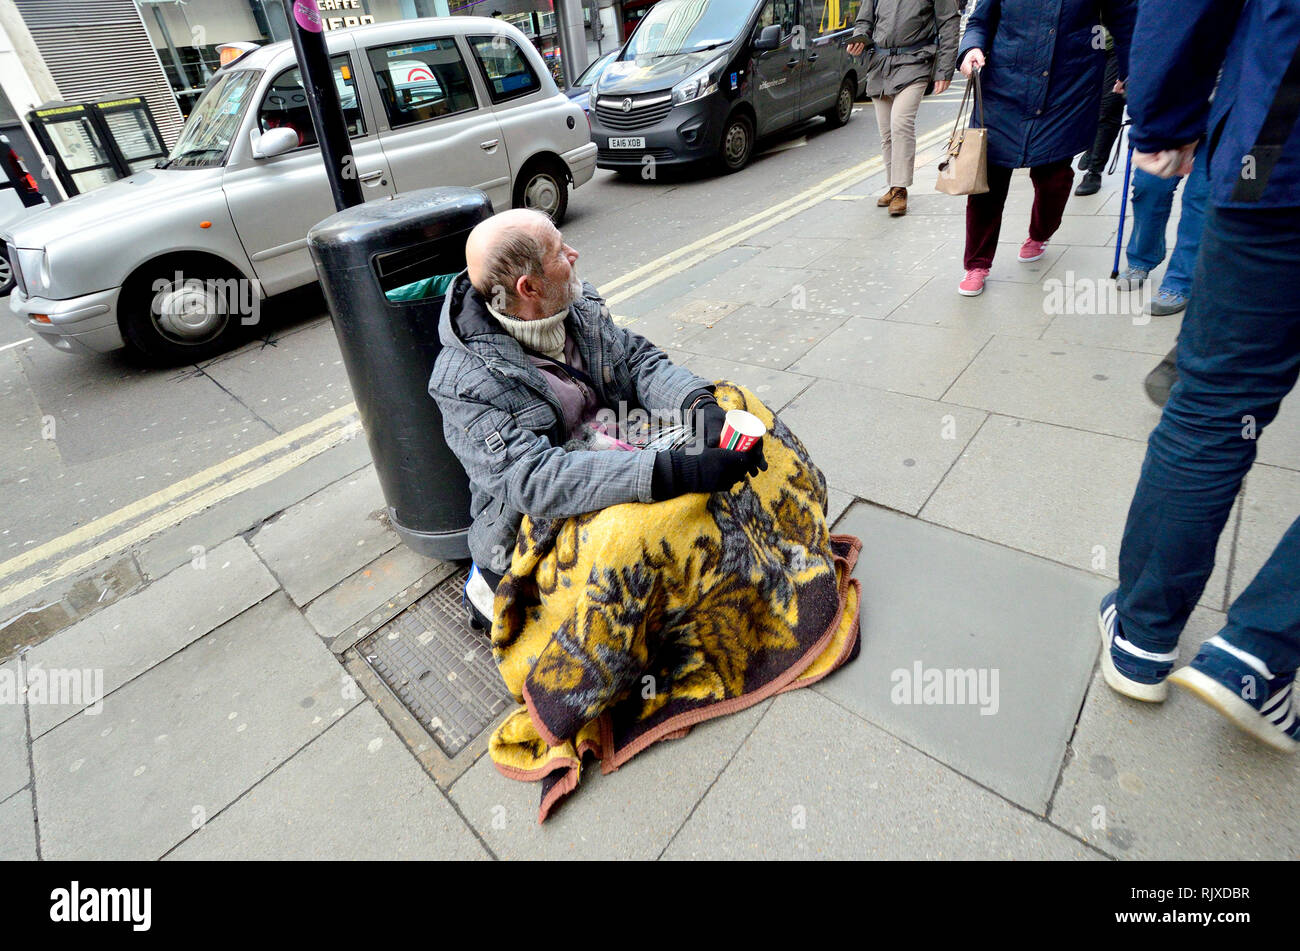 London, England, UK. Homeless man in central London - Stock Image